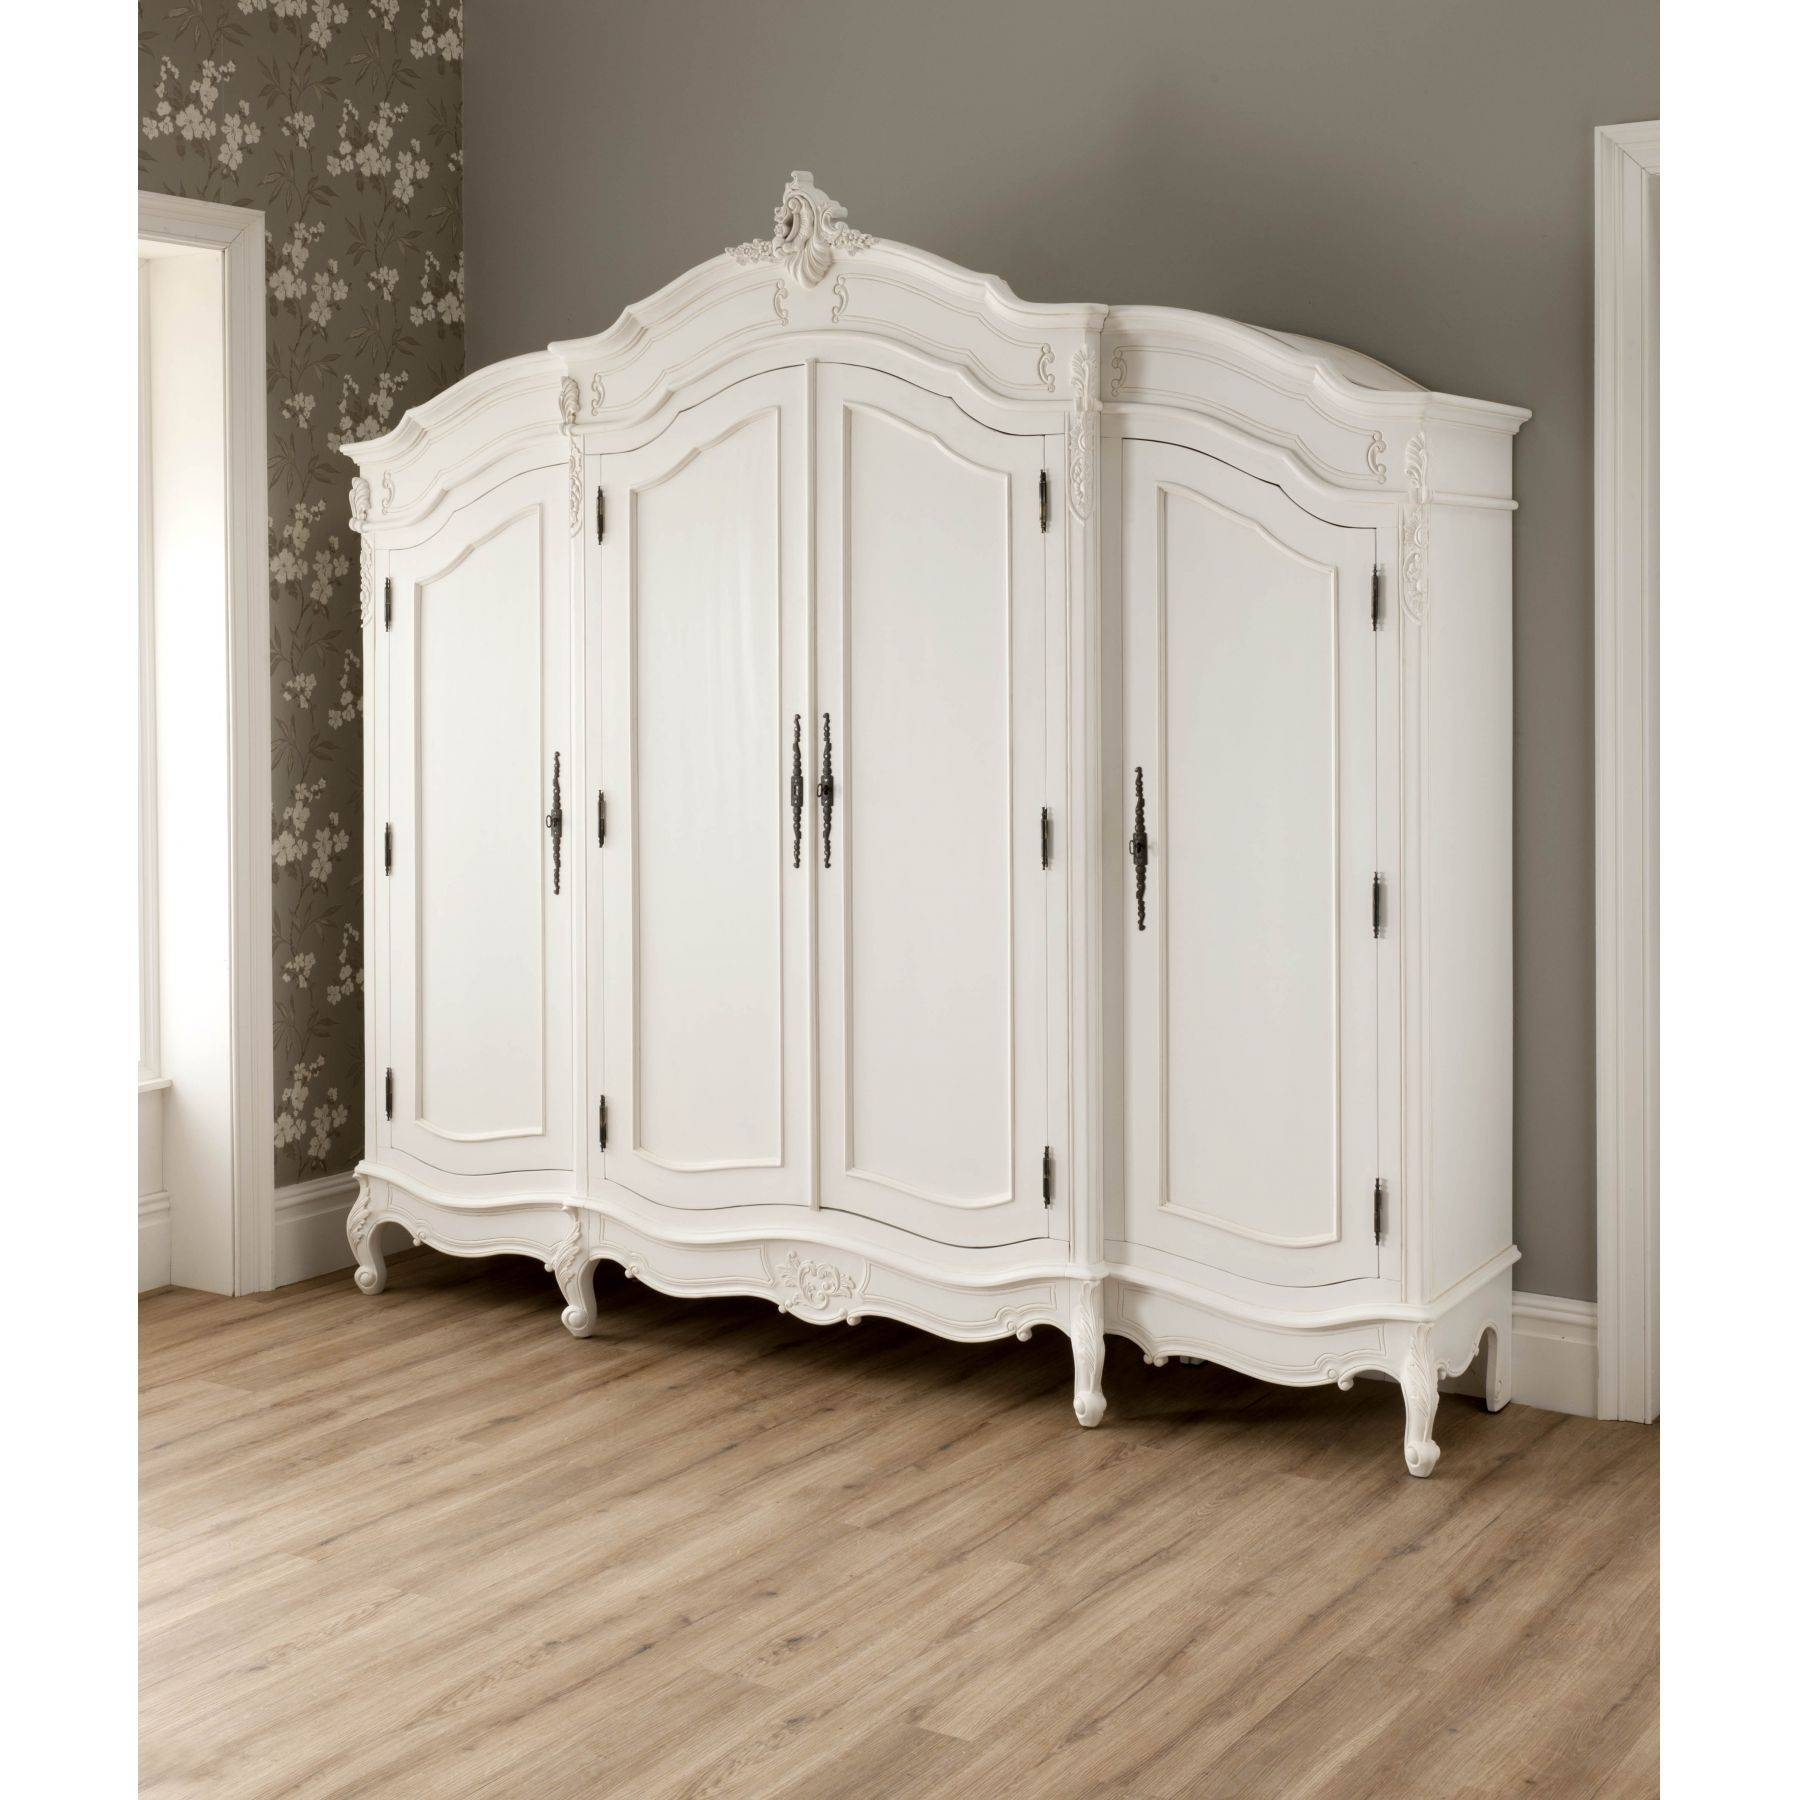 La Rochelle Antique French Wardrobe Working Well Alongside Our within White Antique Wardrobes (Image 9 of 15)